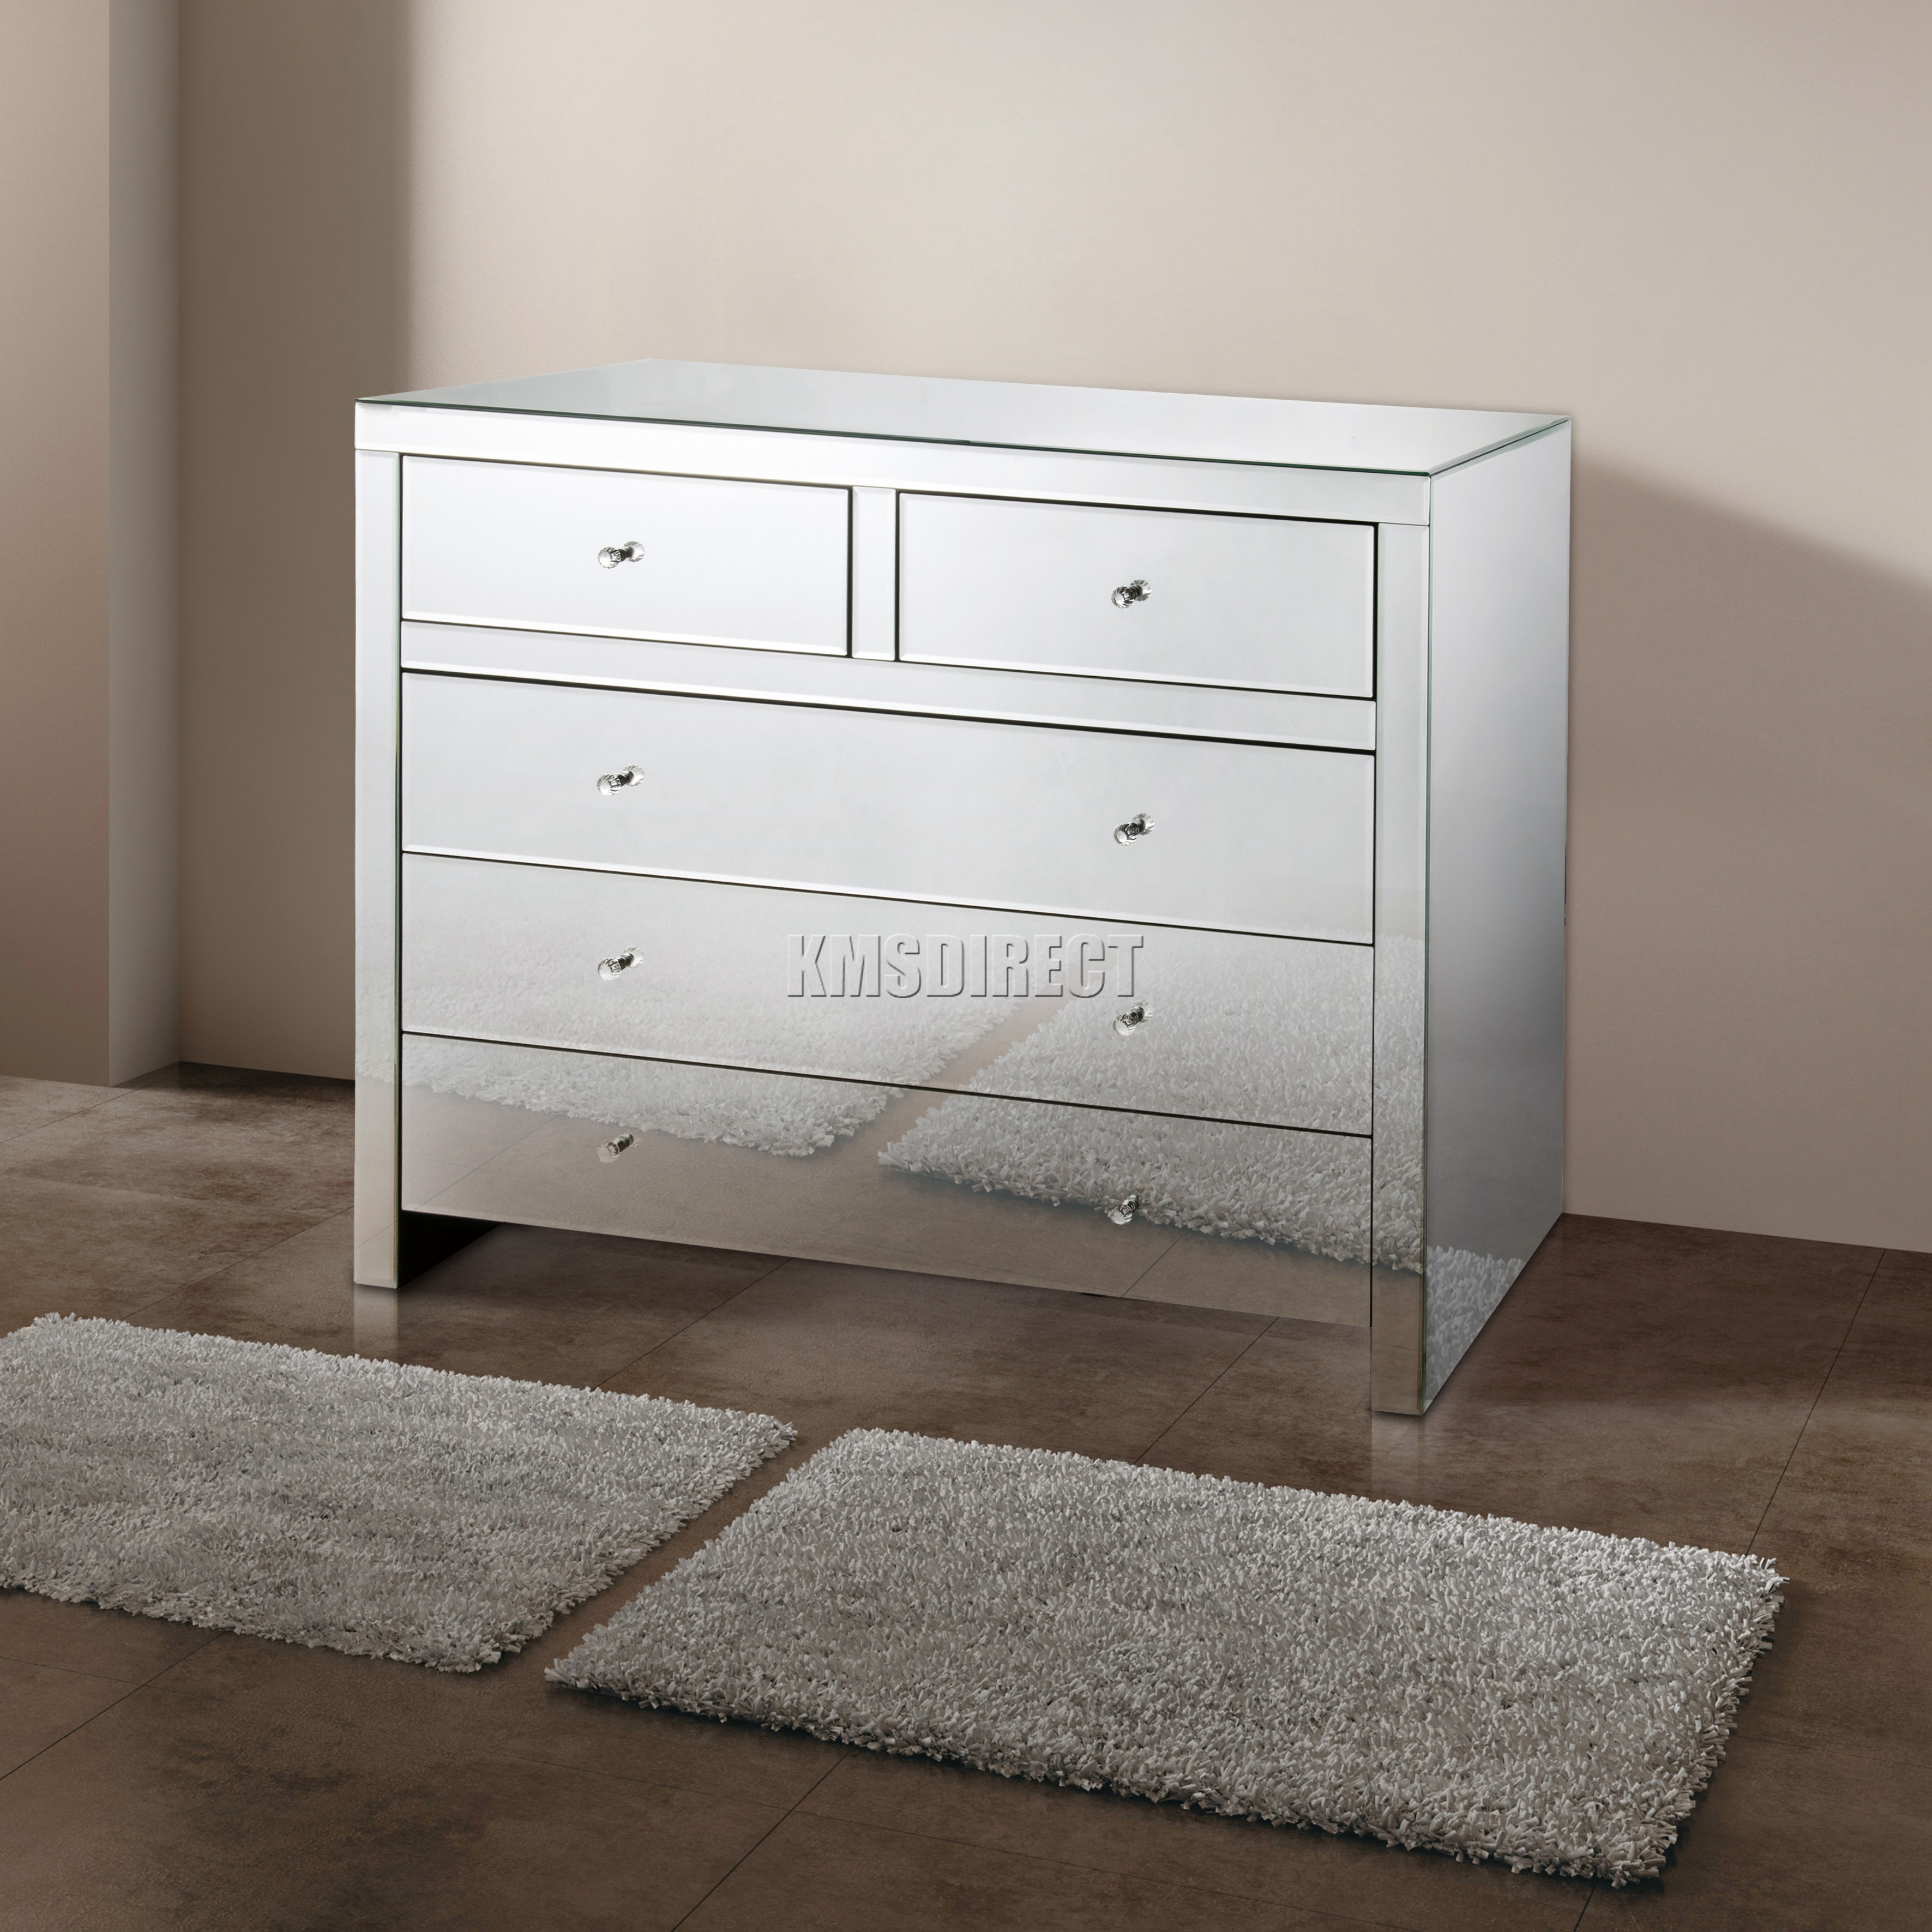 Foxhunter Mirrored Furniture Glass With Drawer Chest Cabinet Table  # Muebles Pestana